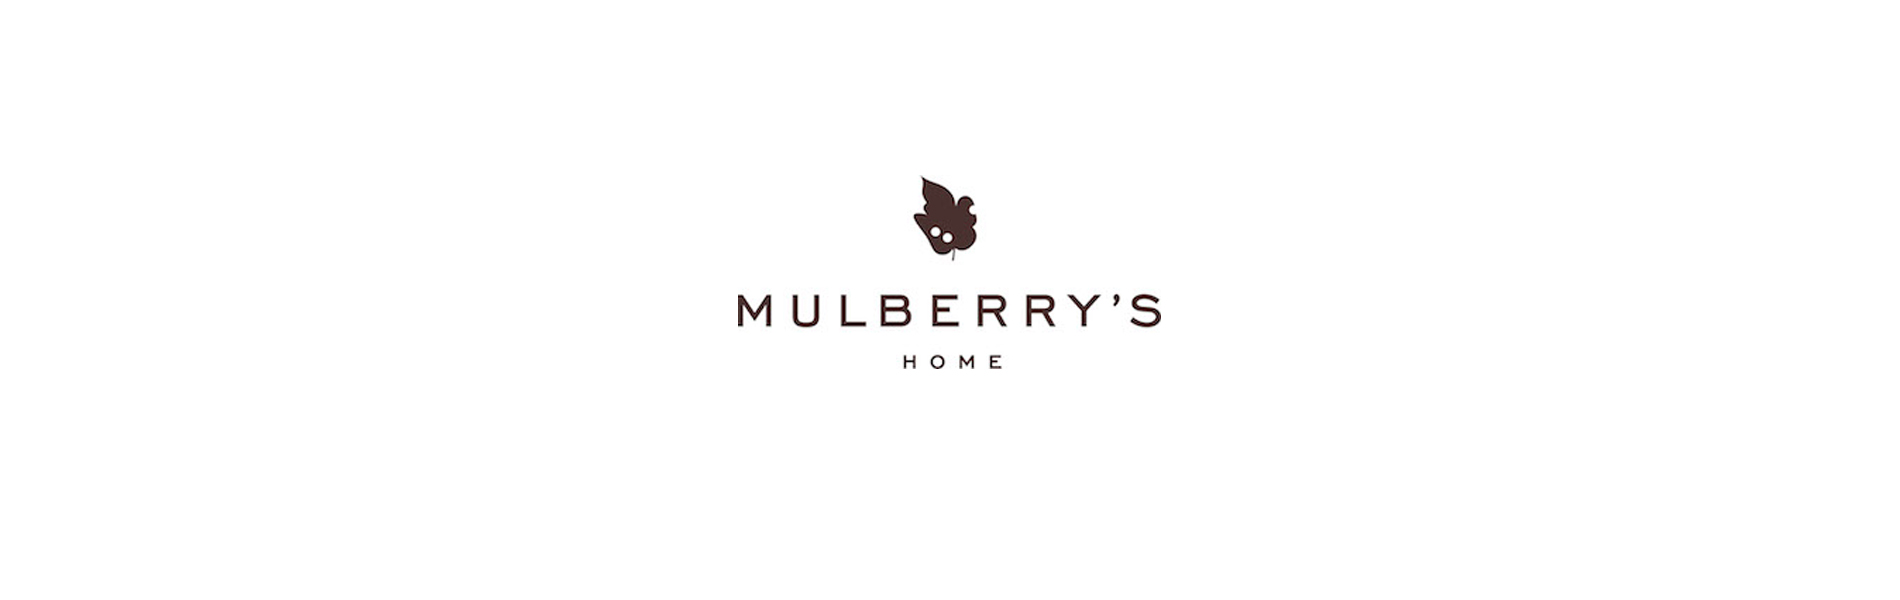 Mulberry's Home, Oakland, CA logo